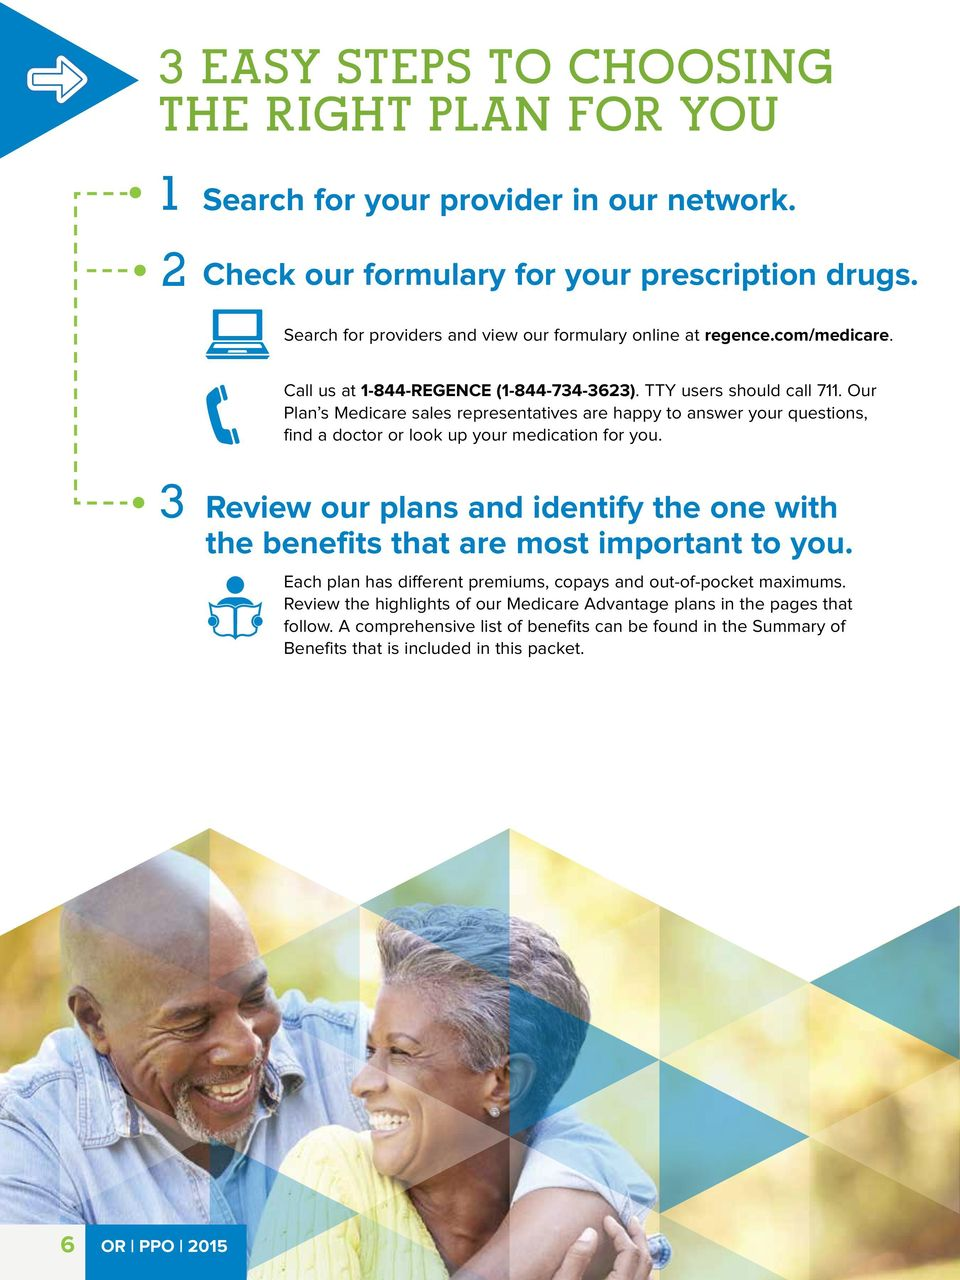 Our Plan s Medicare sales representatives are happy to answer your questions, find a doctor or look up your medication for you.